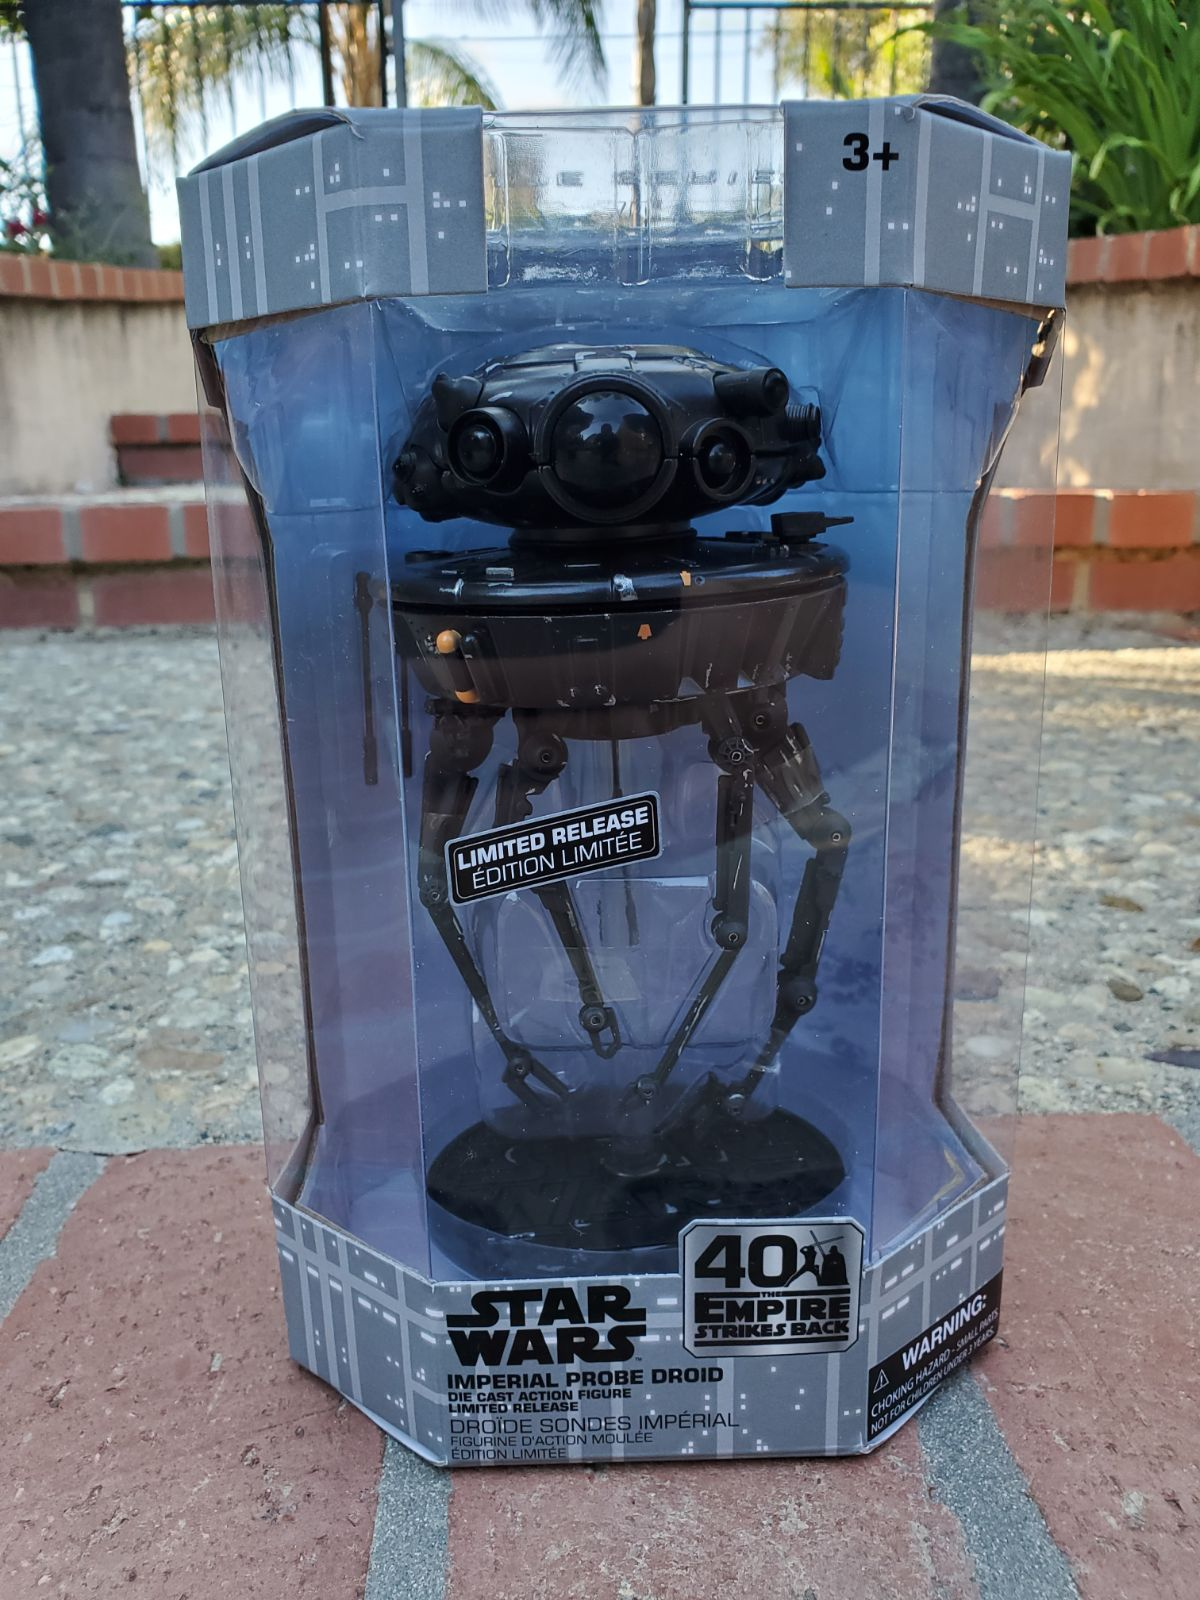 Star Wars Imperial Probe Droid